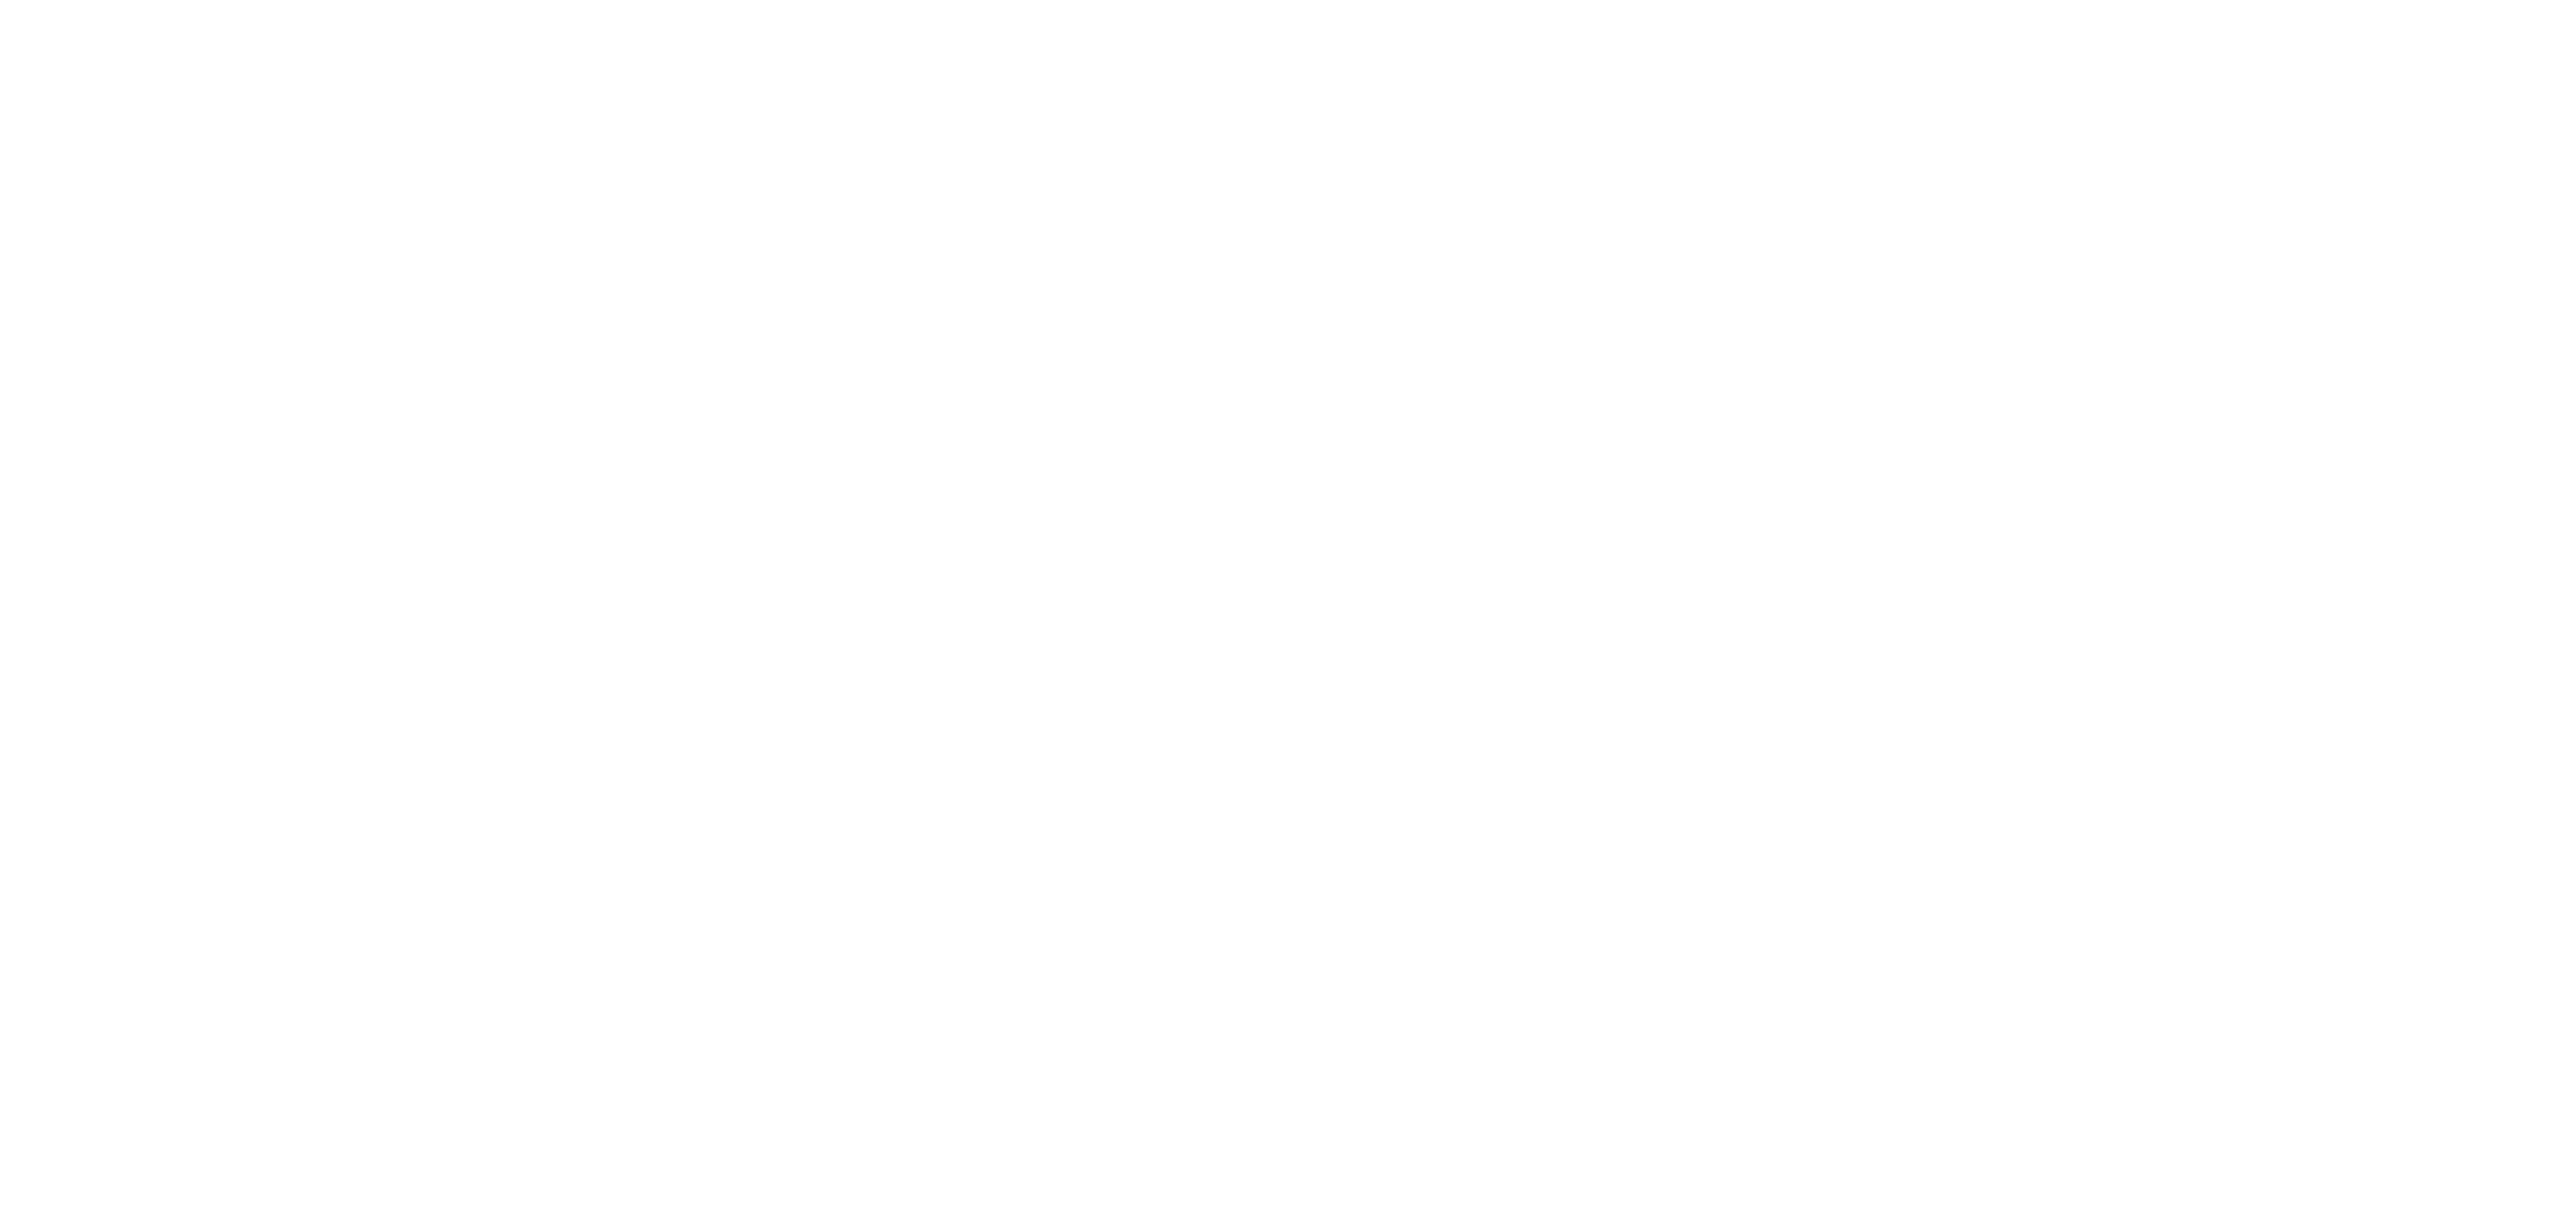 Just Commercial Solutions